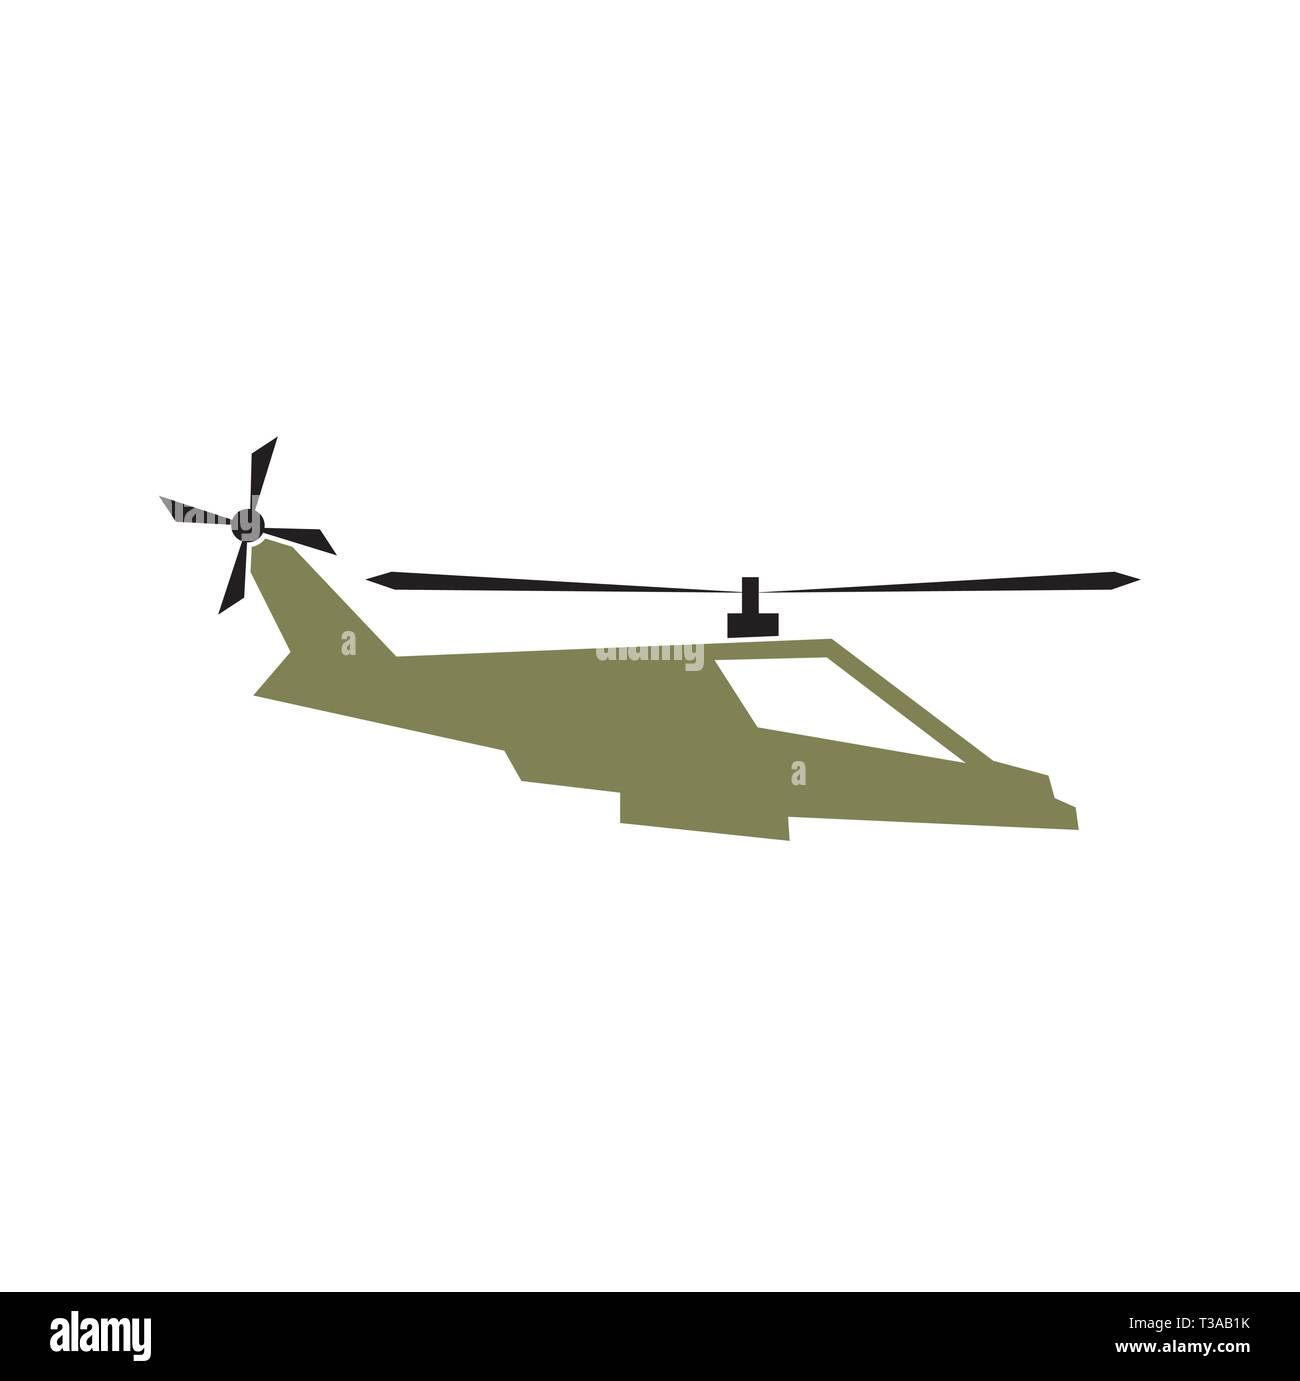 Military vehicle icon on background for graphic and web